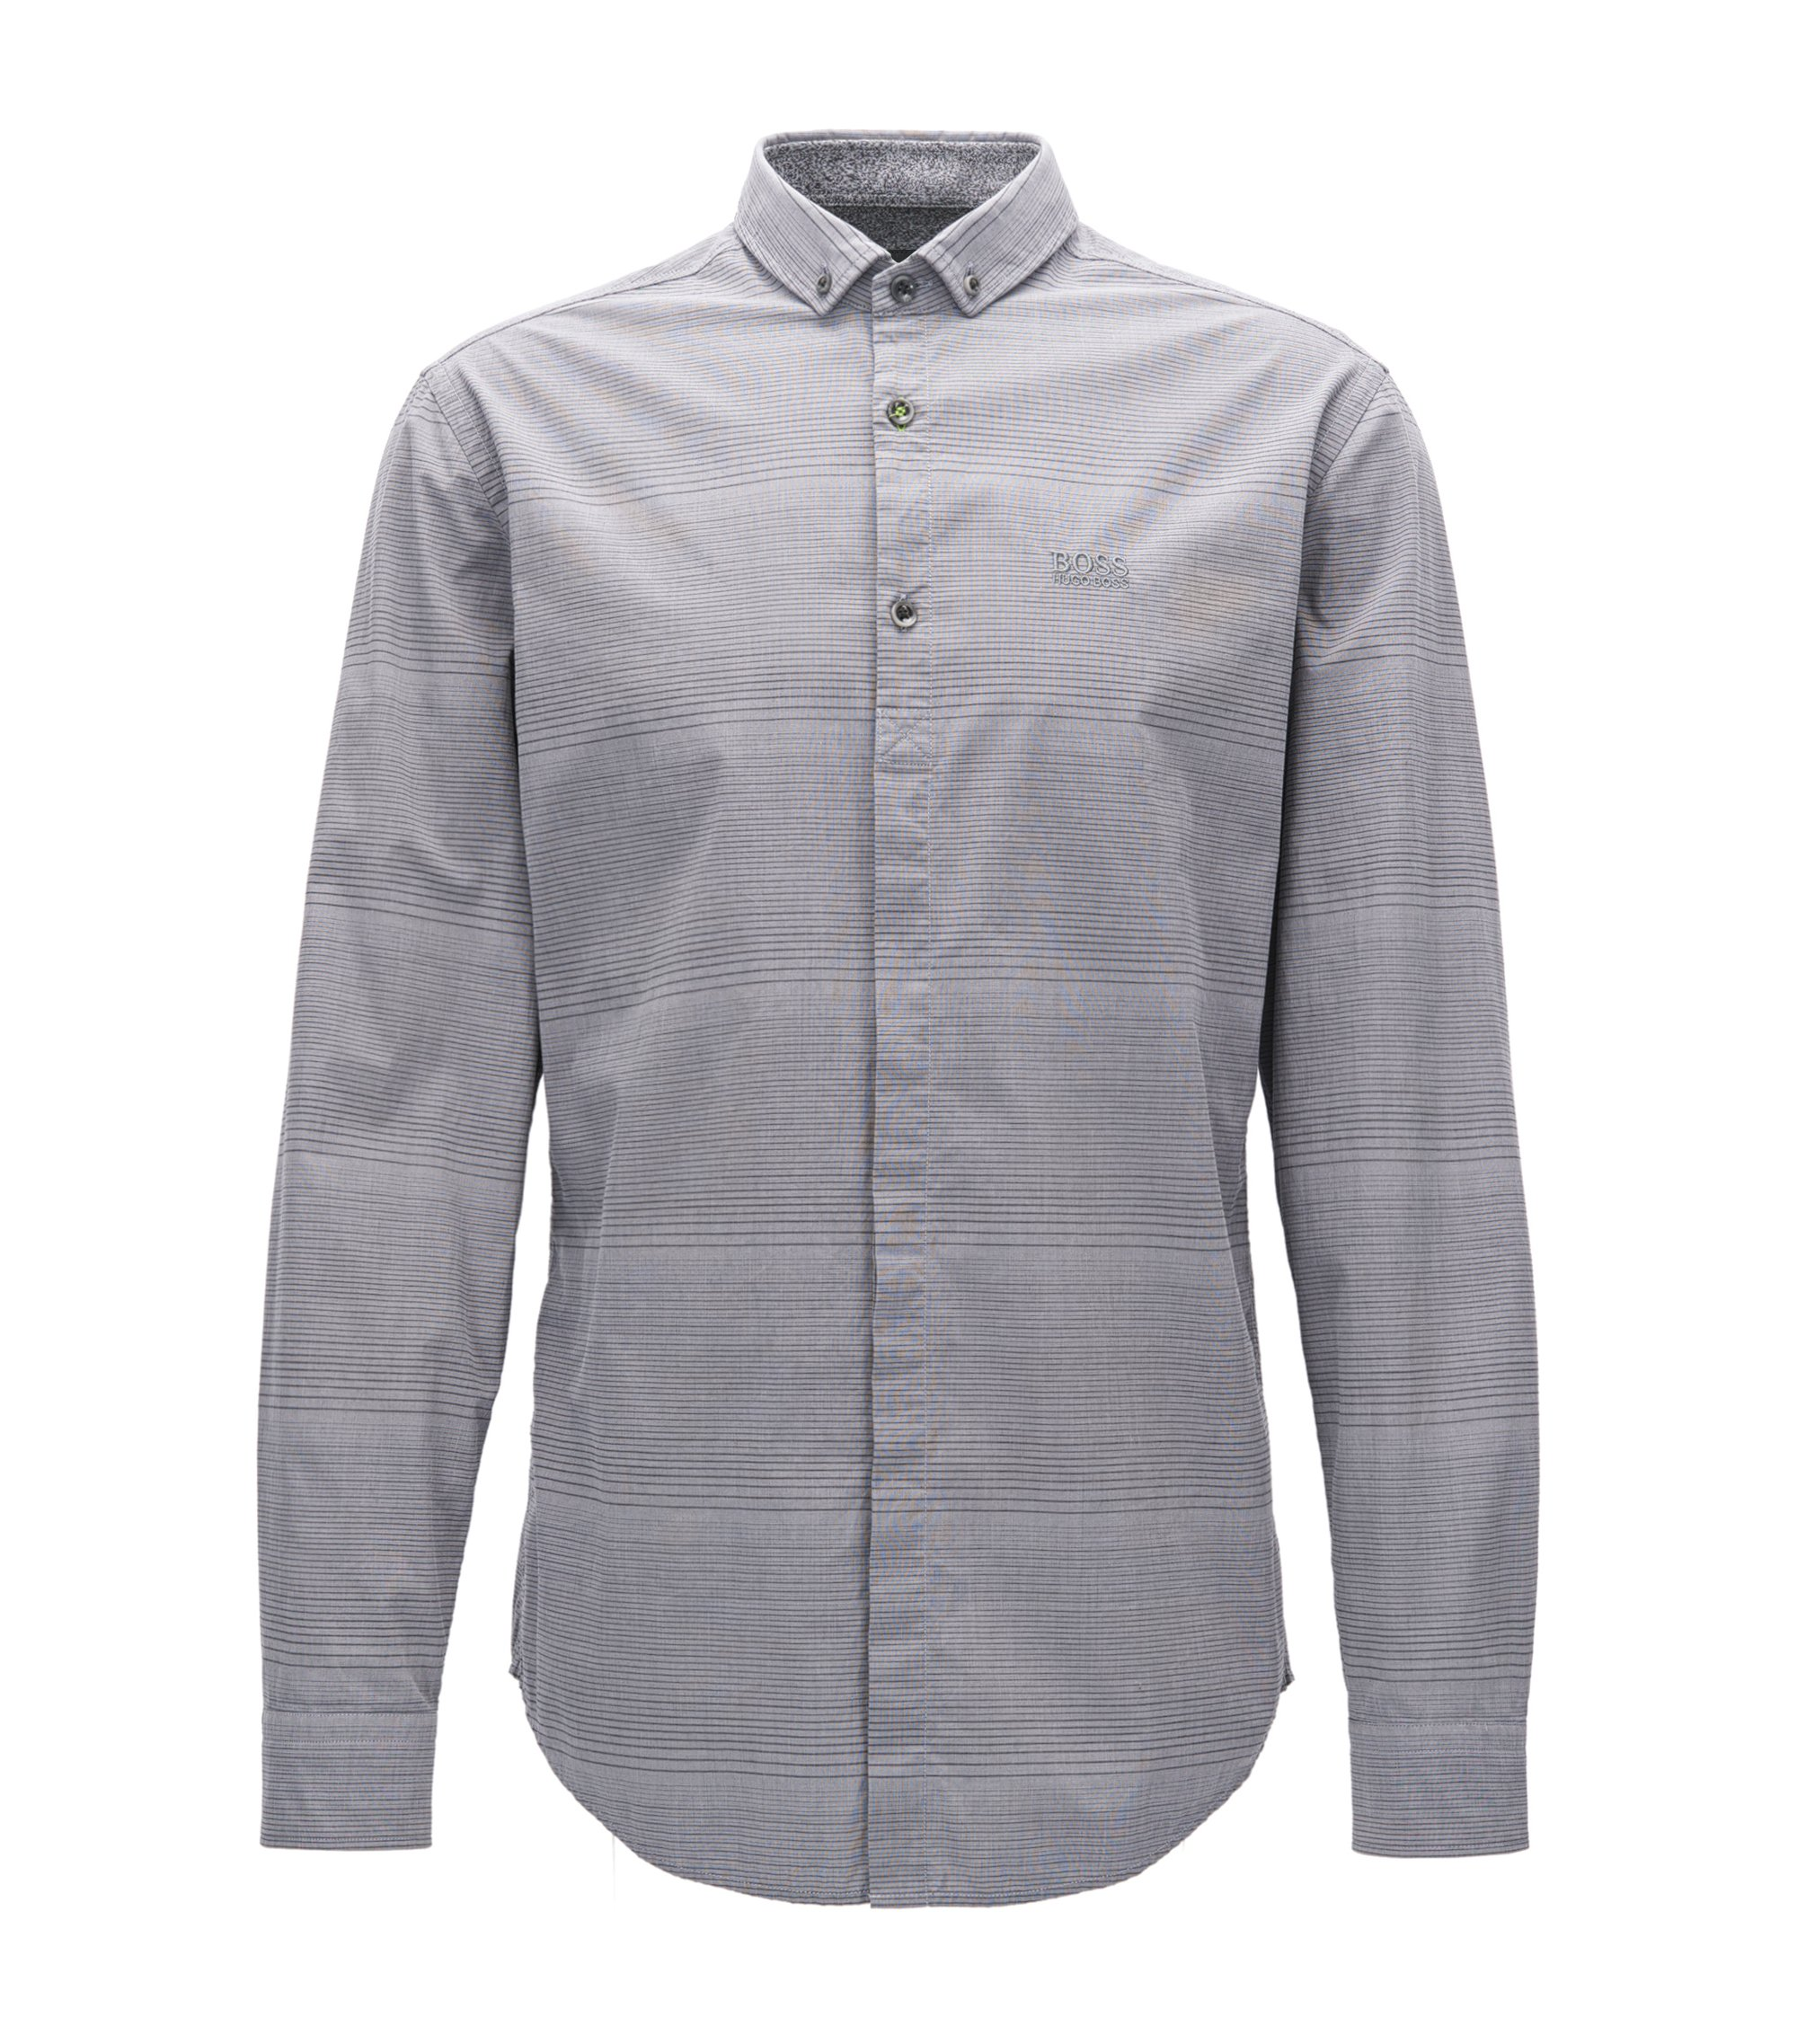 Chemise Slim Fit en jersey de coton stretch, Gris